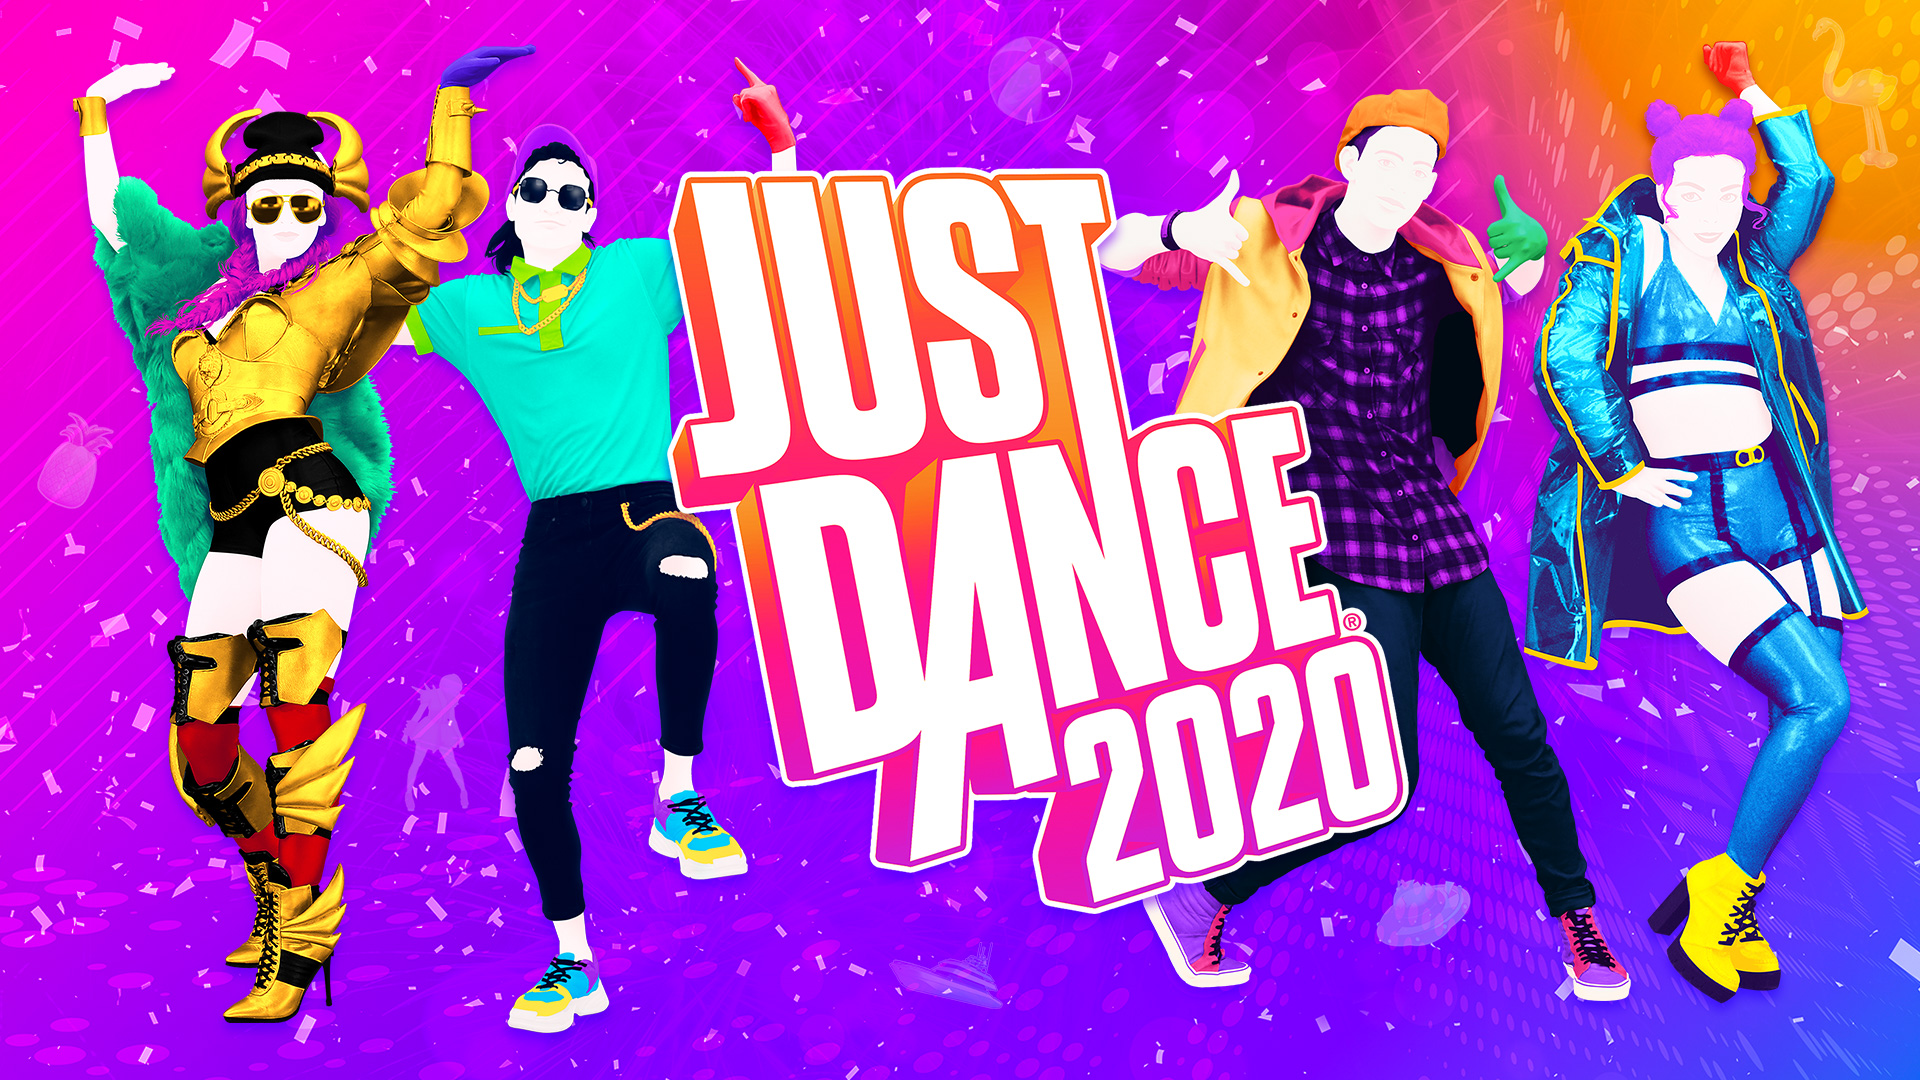 Just Dance 2020 for Nintendo Switch   Nintendo Game Details 1920x1080